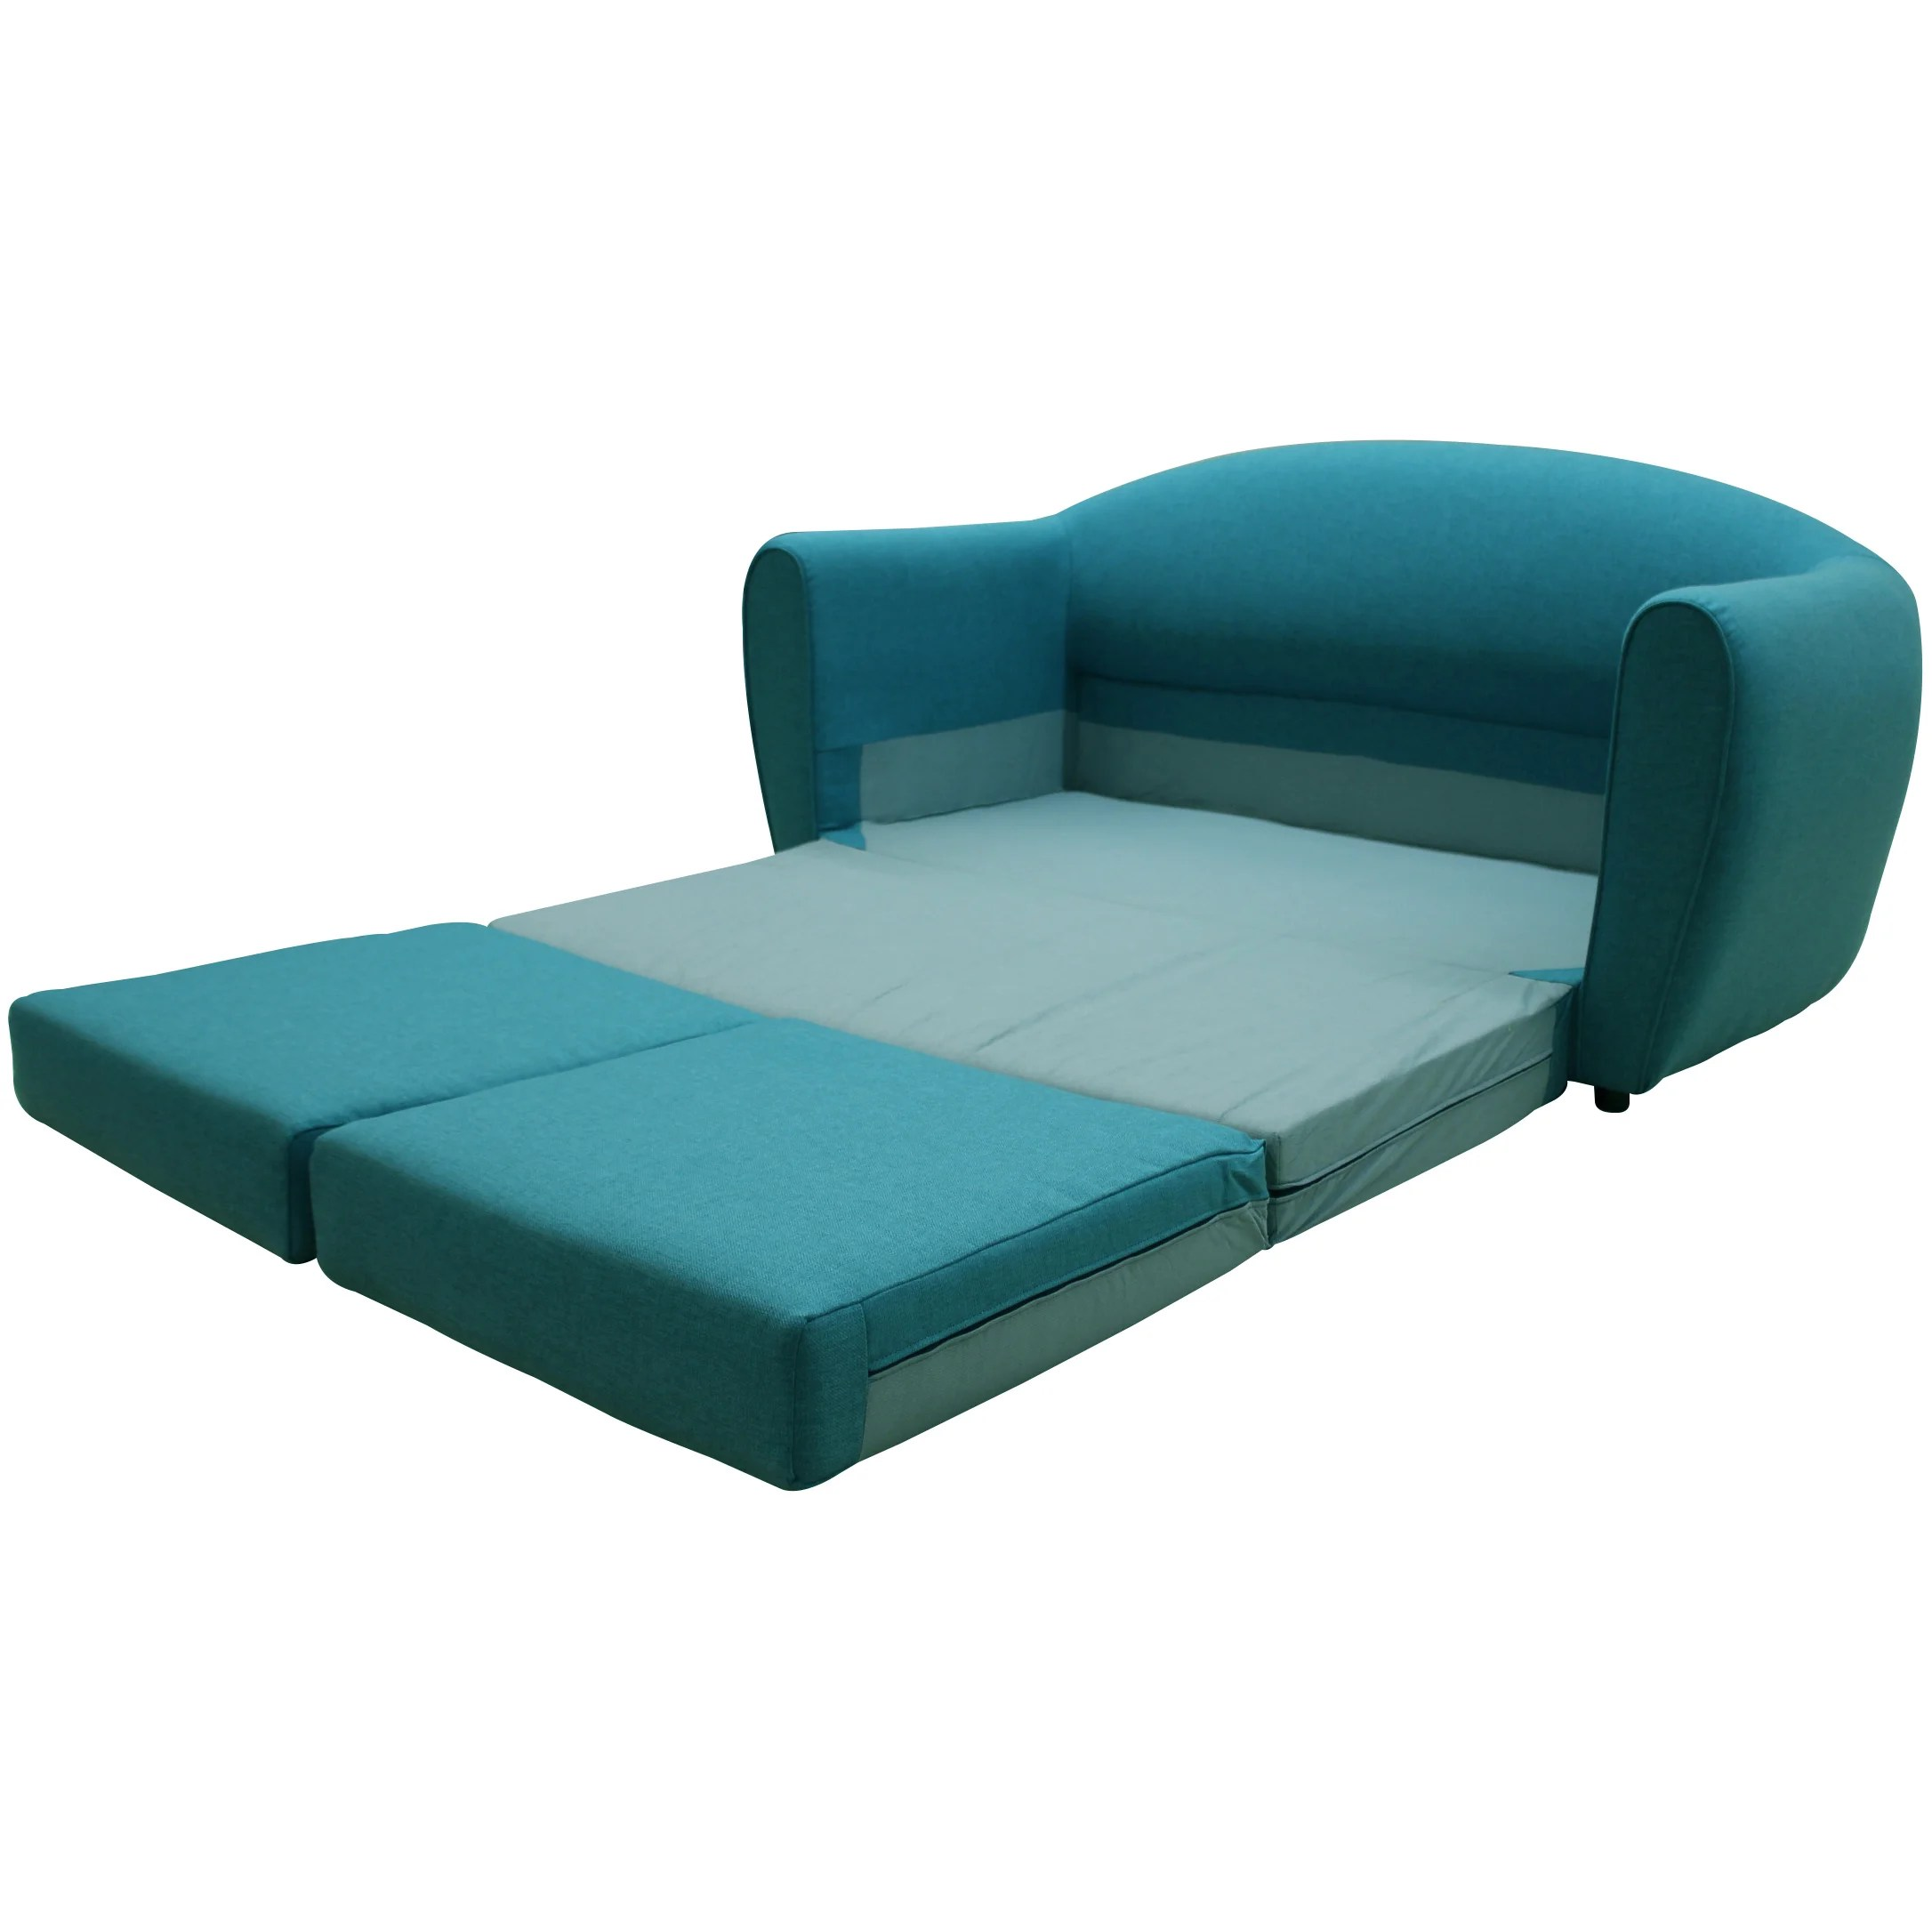 Sleeper Loveseat Sofa Quick